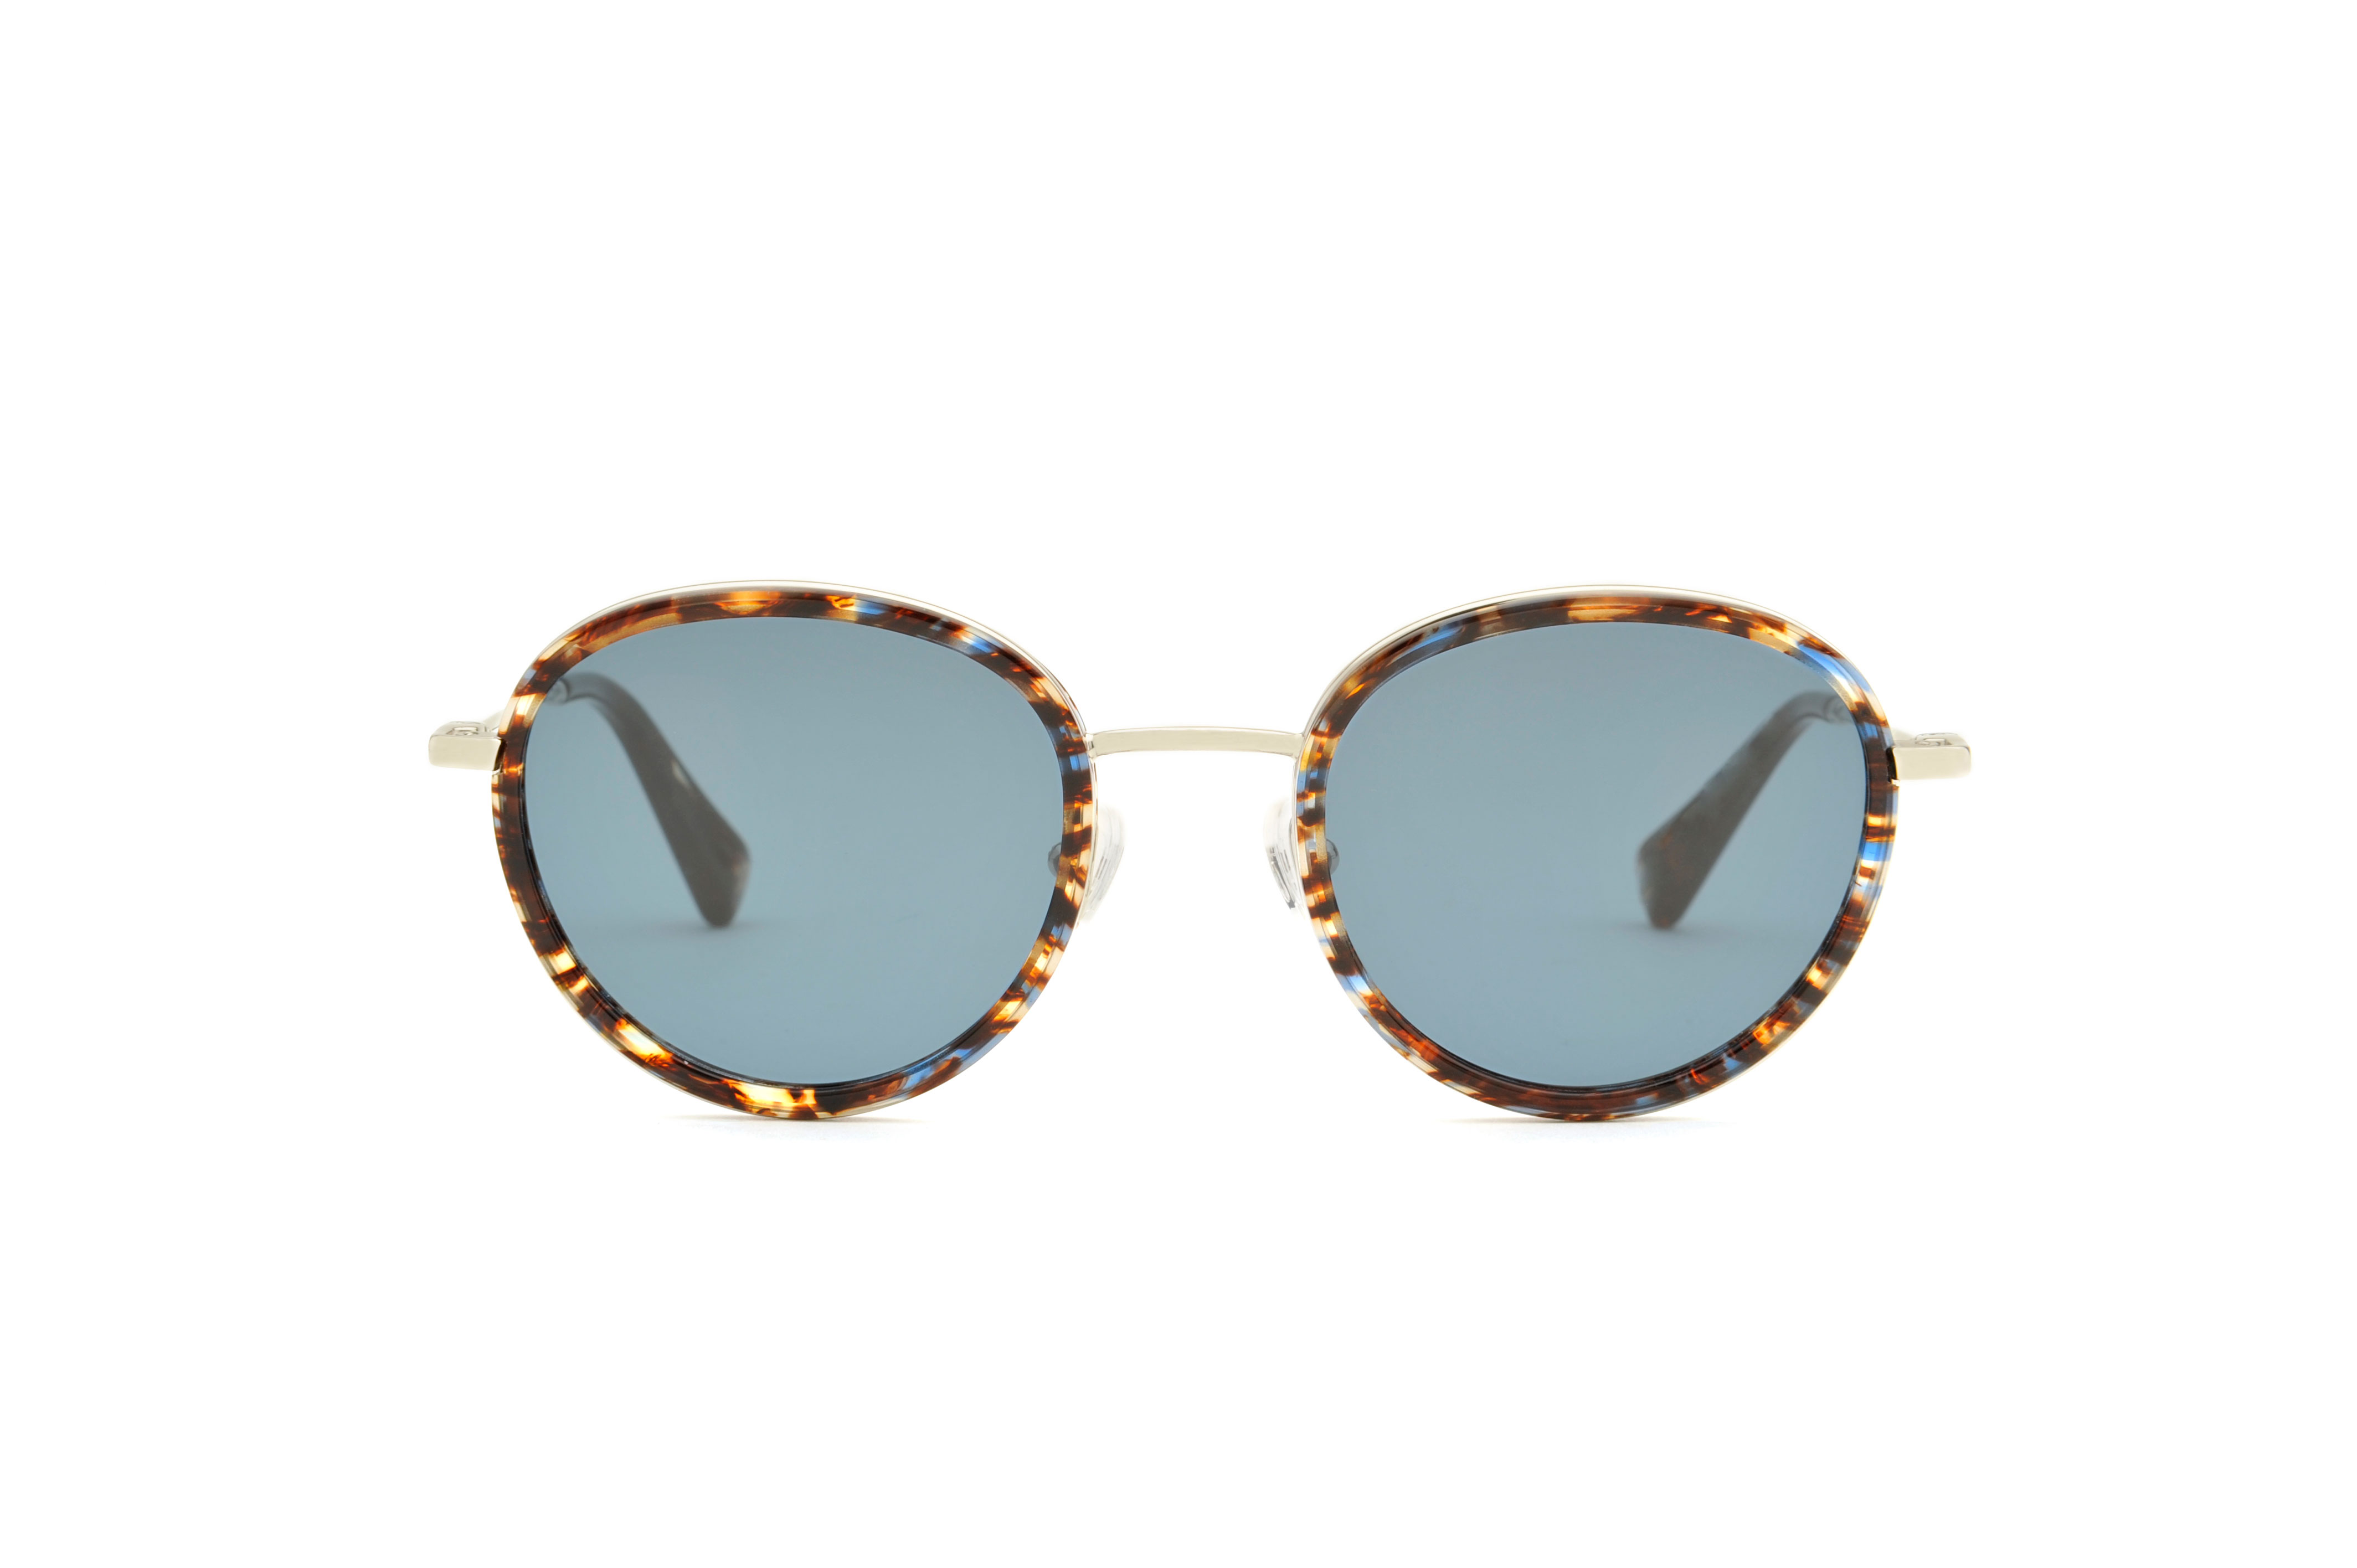 Pixie acetate/metal rounded tortoise sunglasses by GIGI Studios